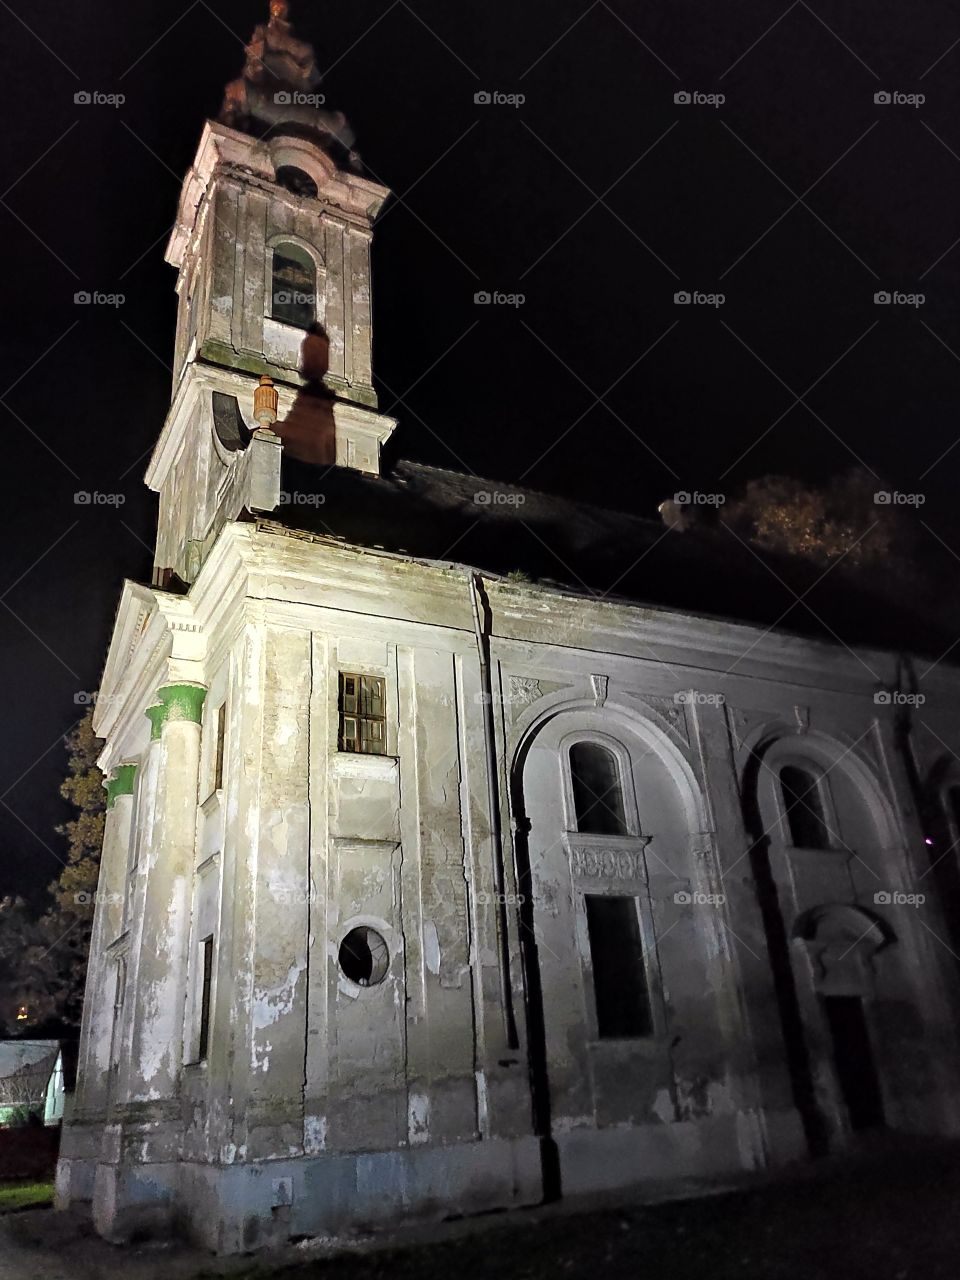 Vrbas Serbia Protestant Church in town centre by night